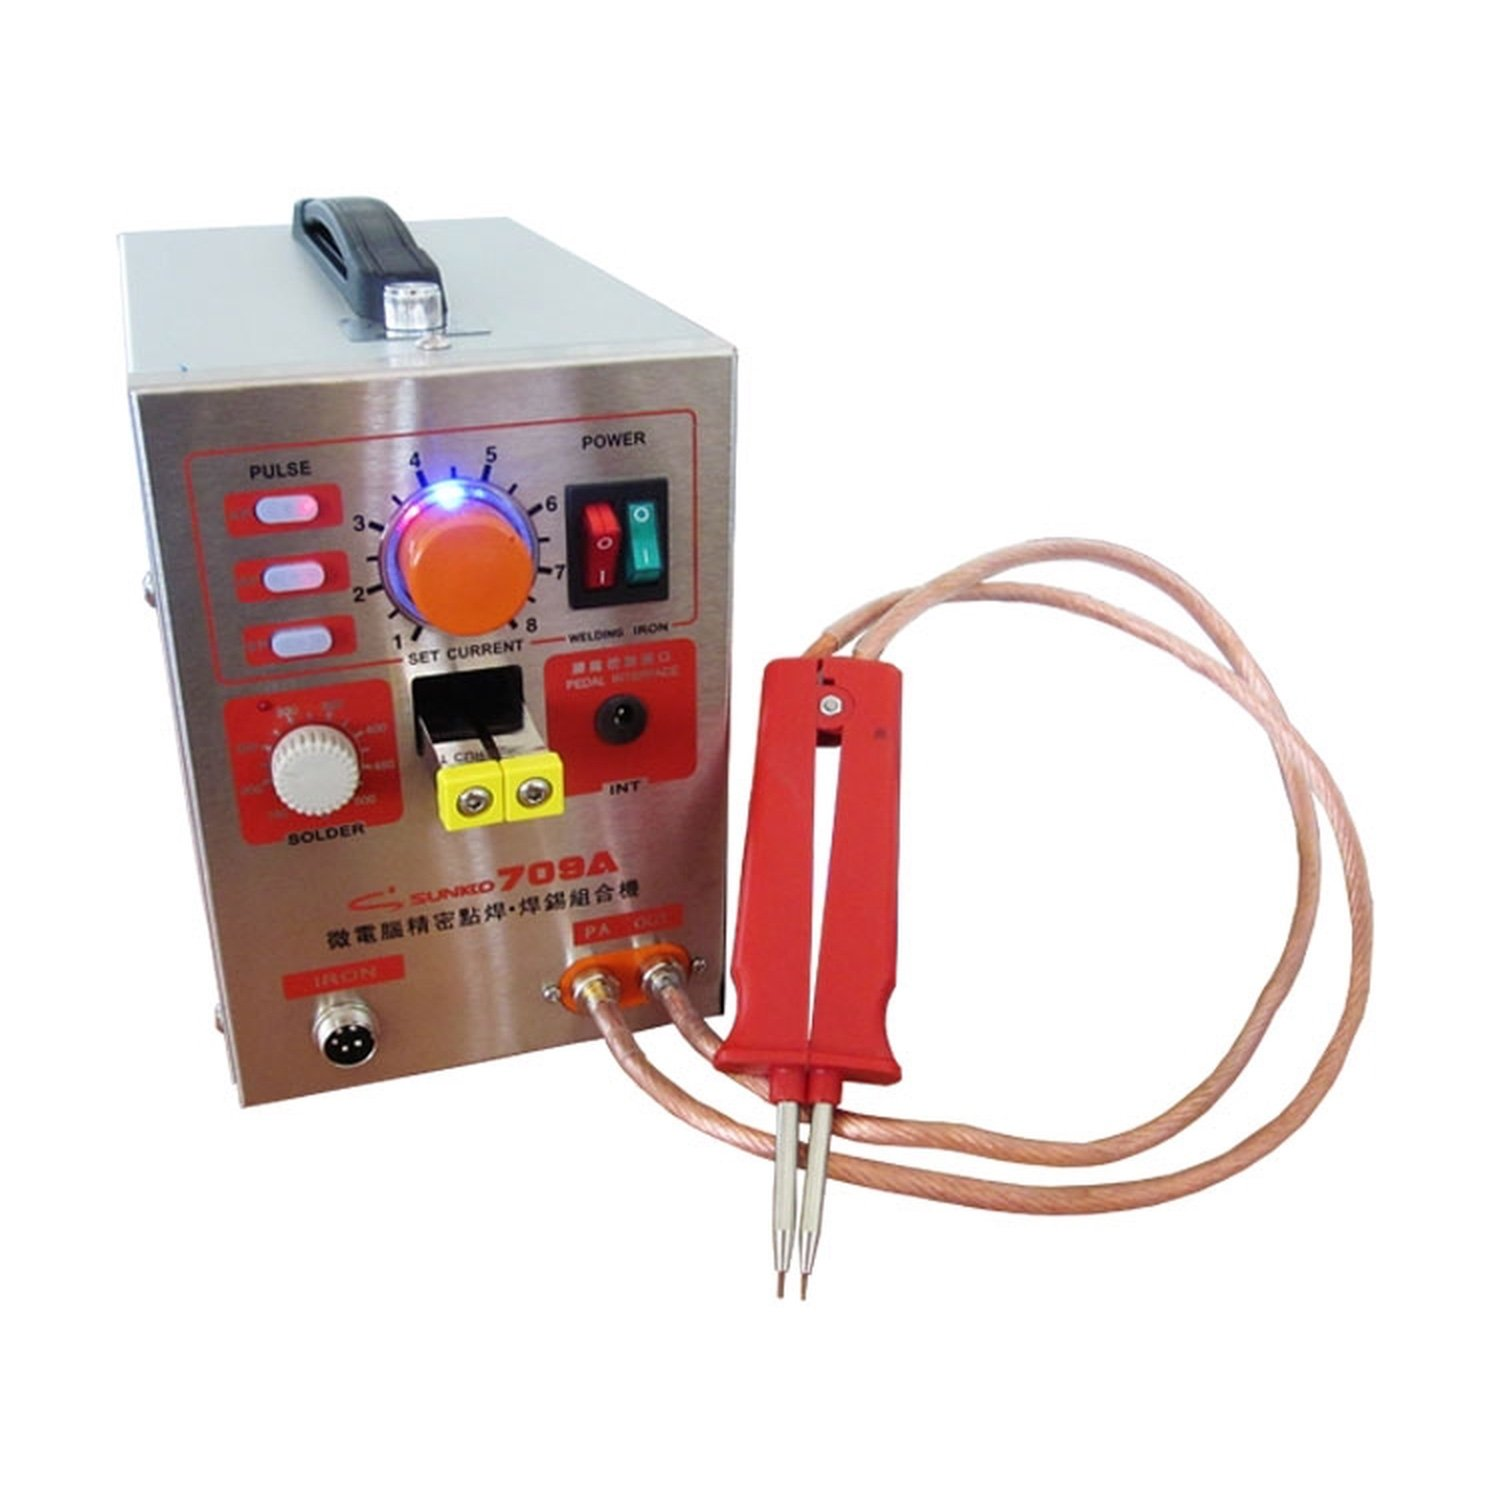 Welding Machine Point Pulsed Batteries 18650, 2170 And Similarly, Up To 800A, 1,9kw Press Spot Welder